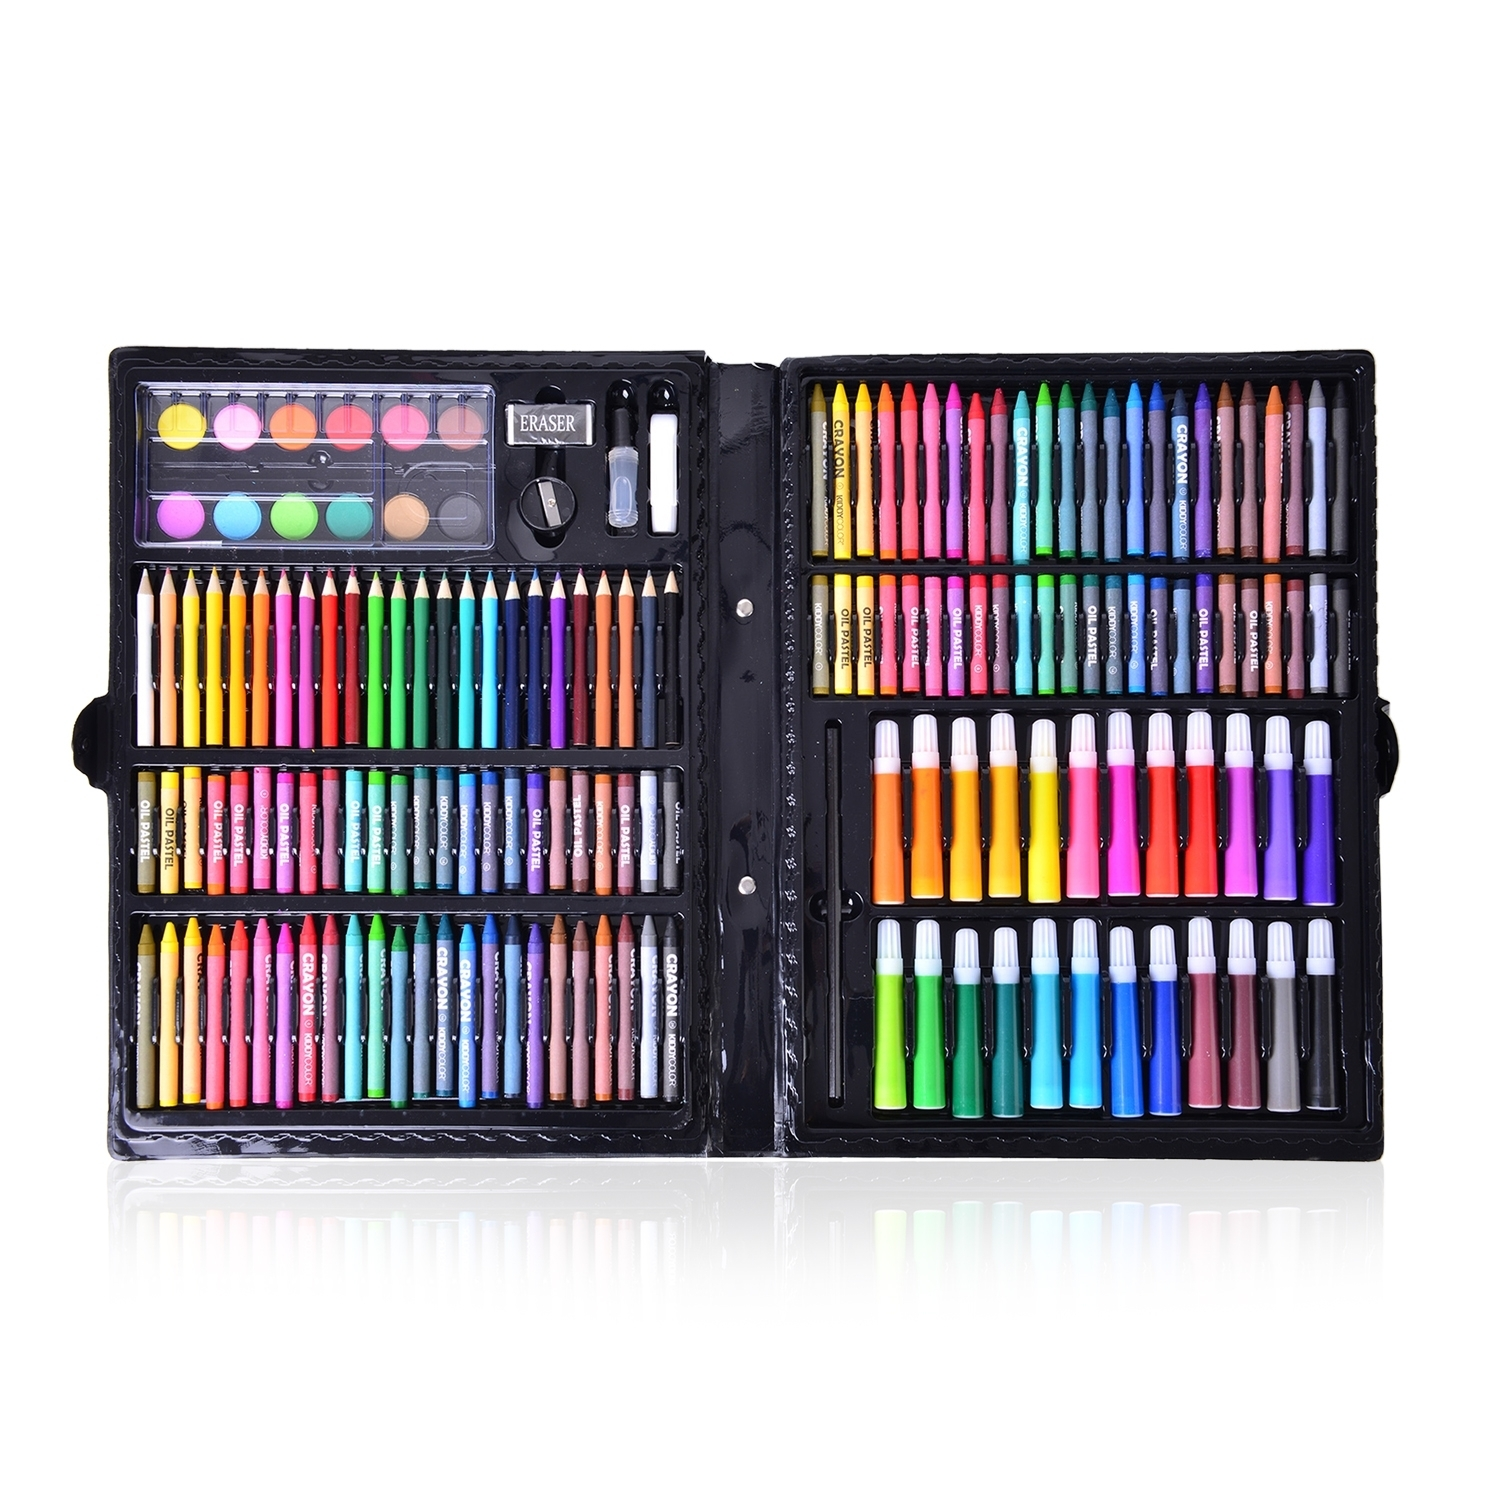 150 Piece Deluxe Art Supply Set (Coloring Pencils, Crayons,Oil Pastels, Markers, Water Paint, Eraser, Pencil, Sharpener, Liquid Glue, and White Glue)